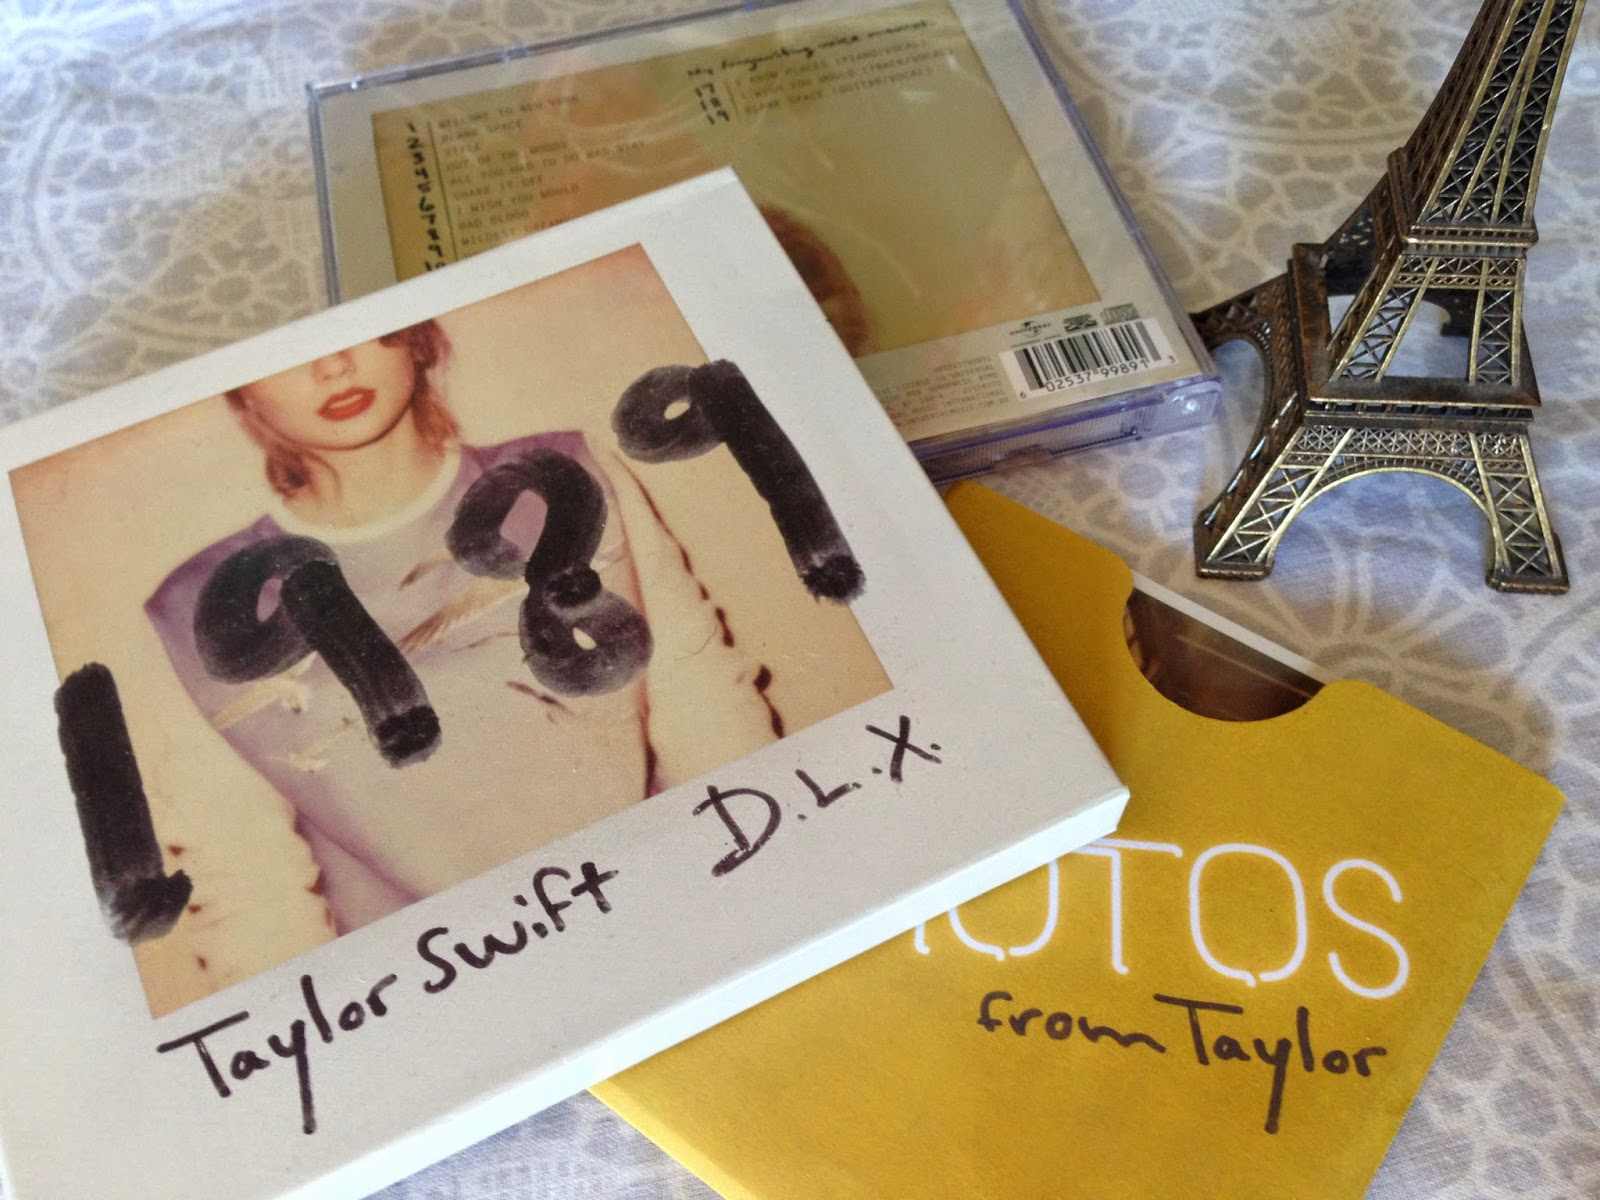 CD Taylor Swift 1989